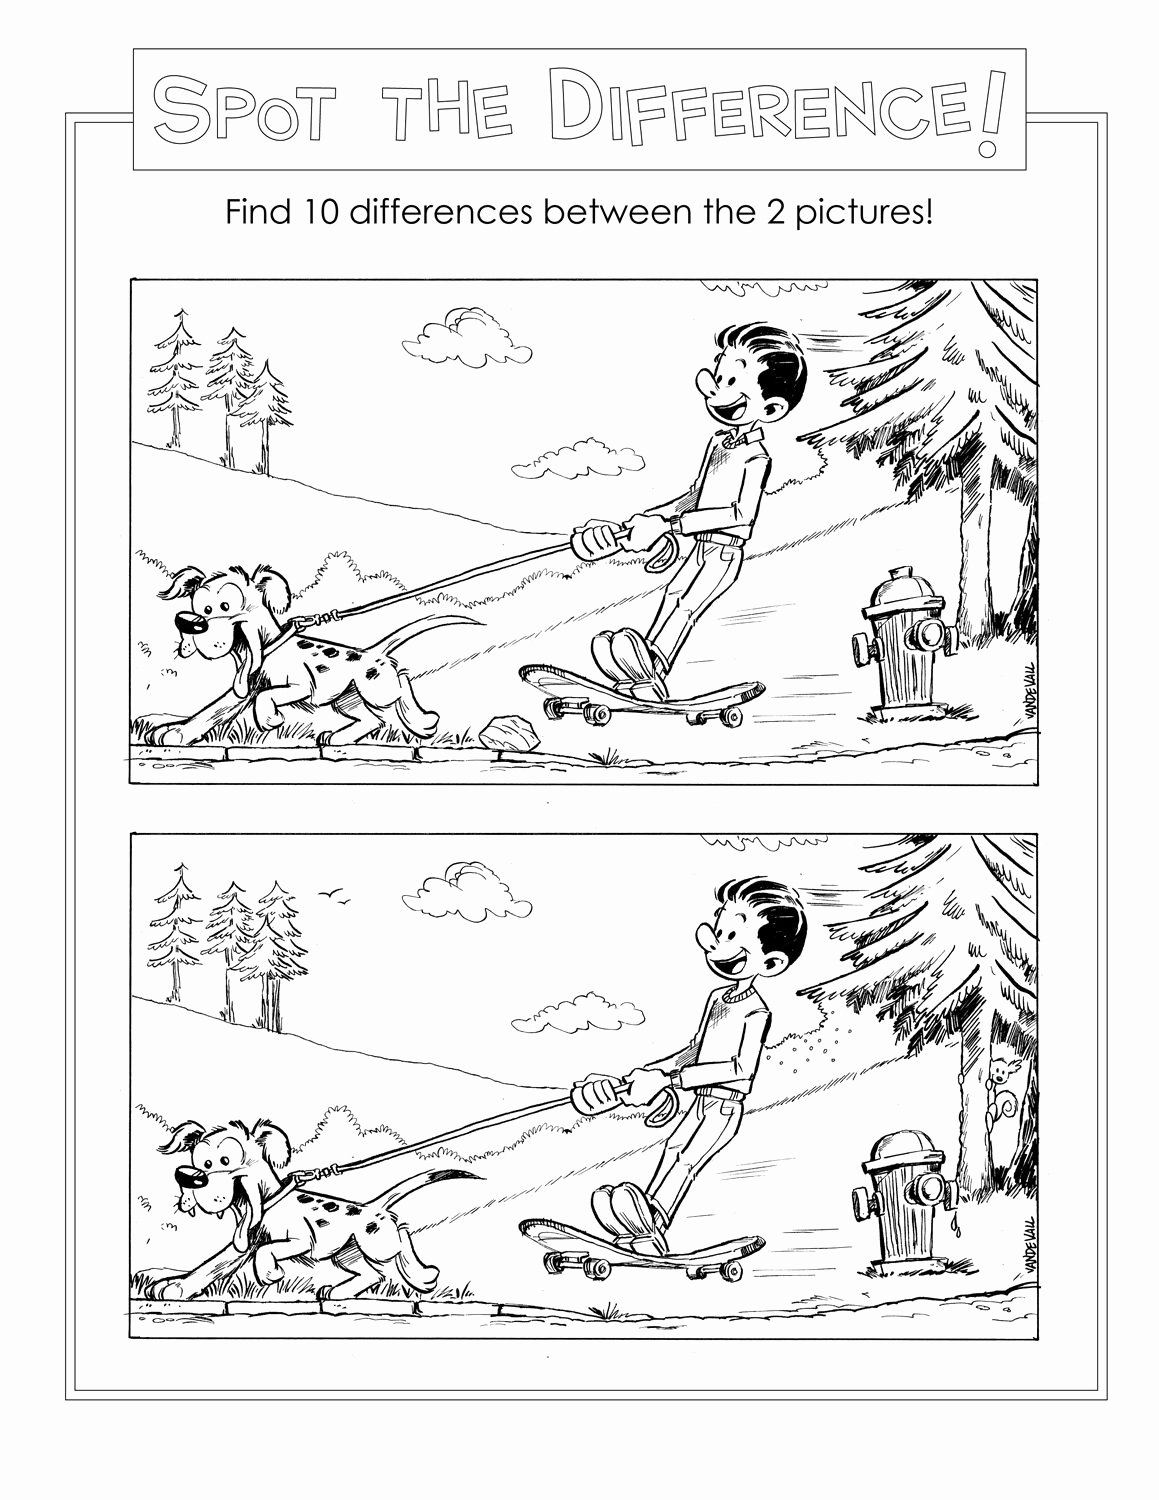 Spot the Difference Worksheets for Preschoolers top Spot the Difference Worksheets